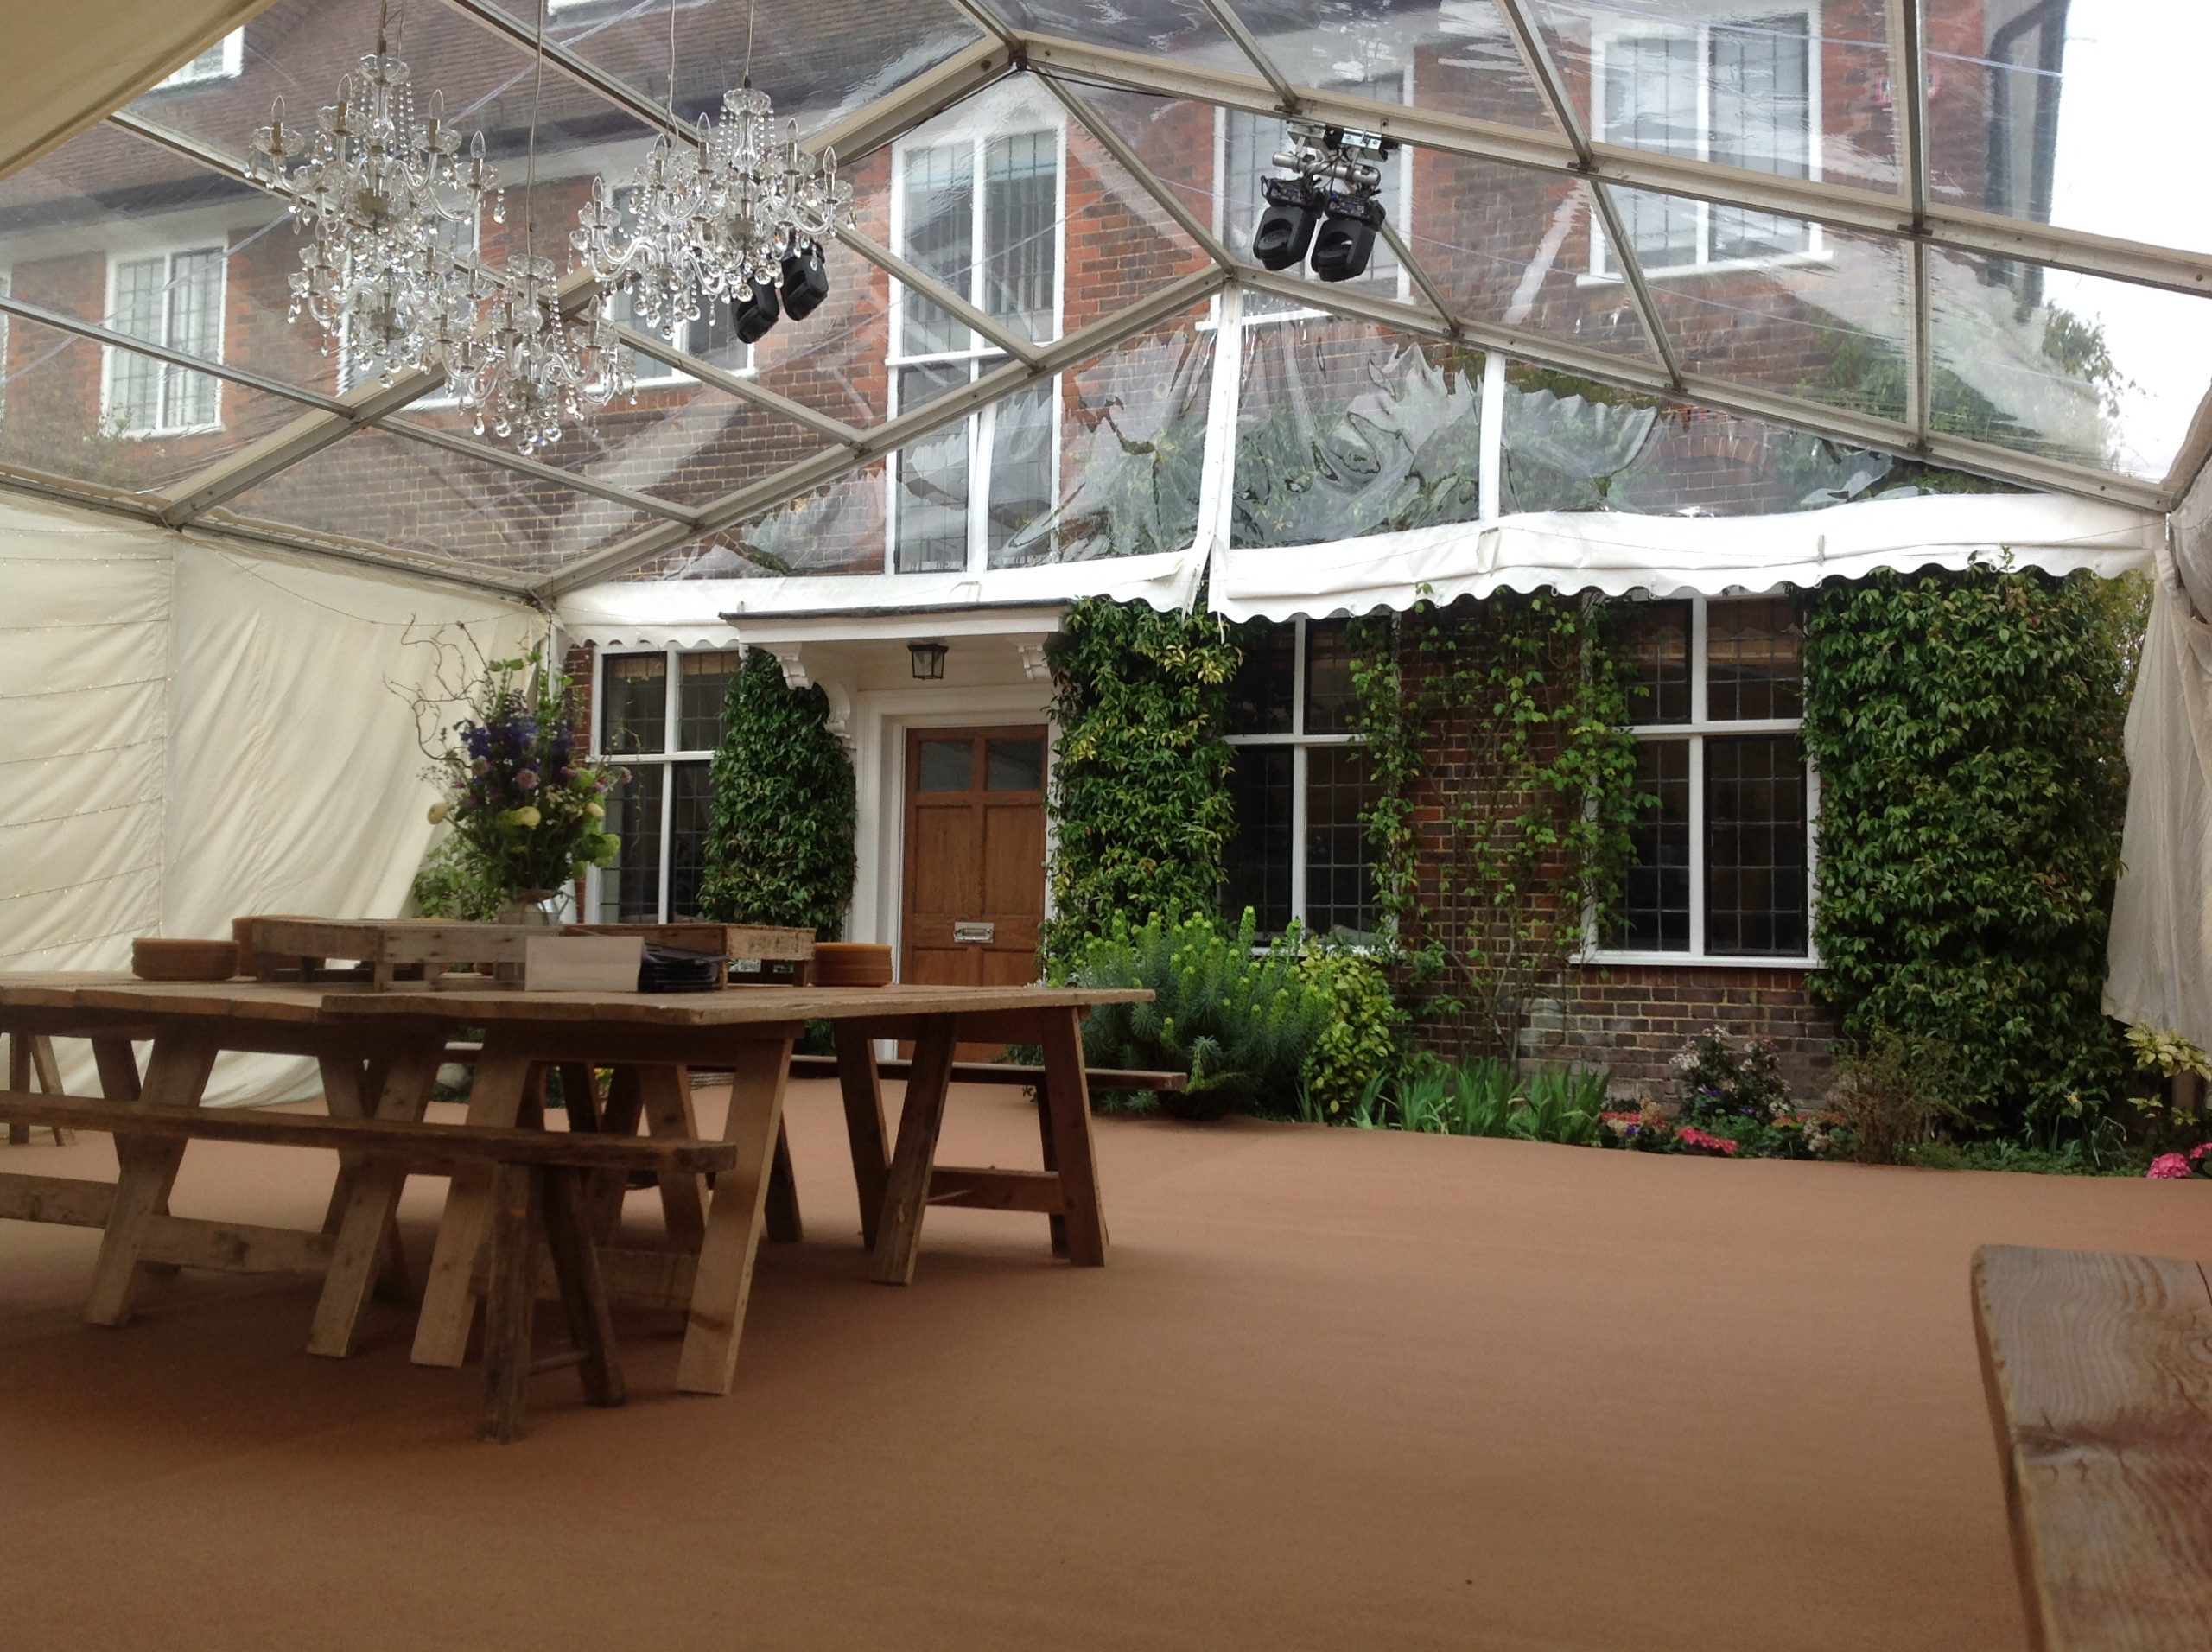 Outside premises set up with marquees as restrictions for outdoor hospitality eased